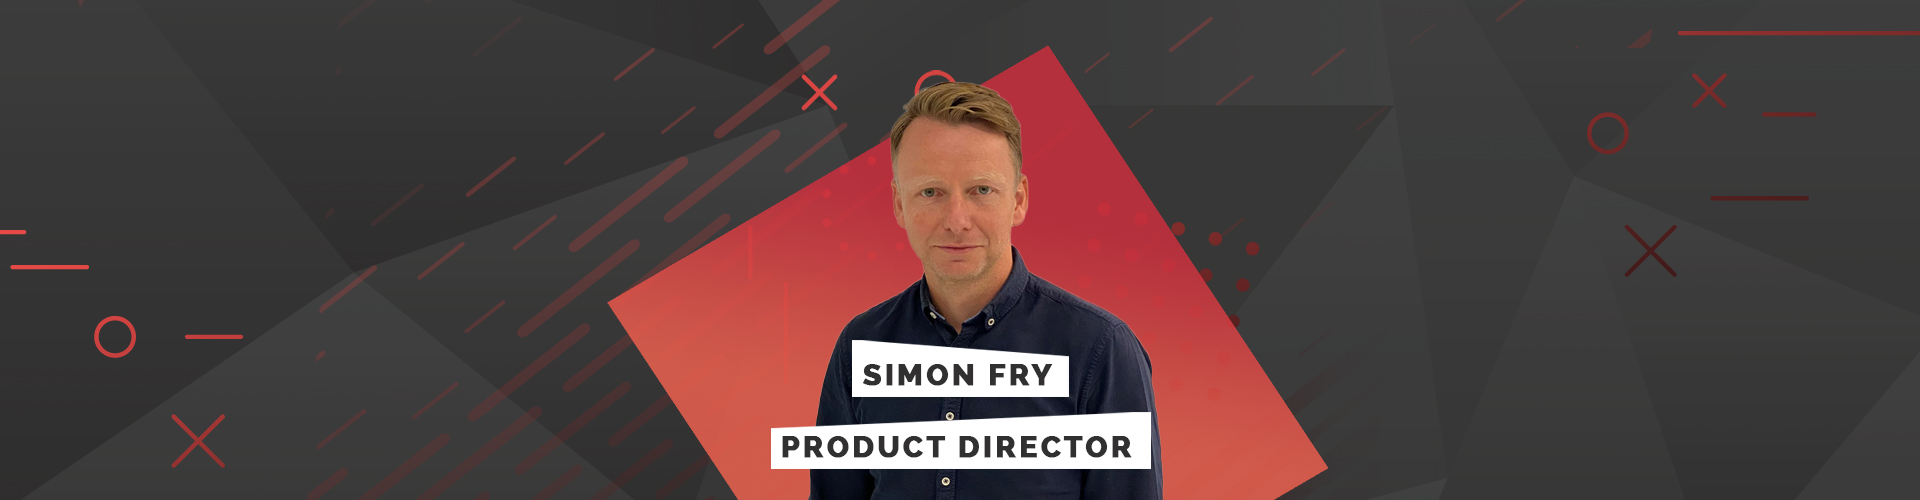 Header image of PageSuite Welcomes Simon Fry